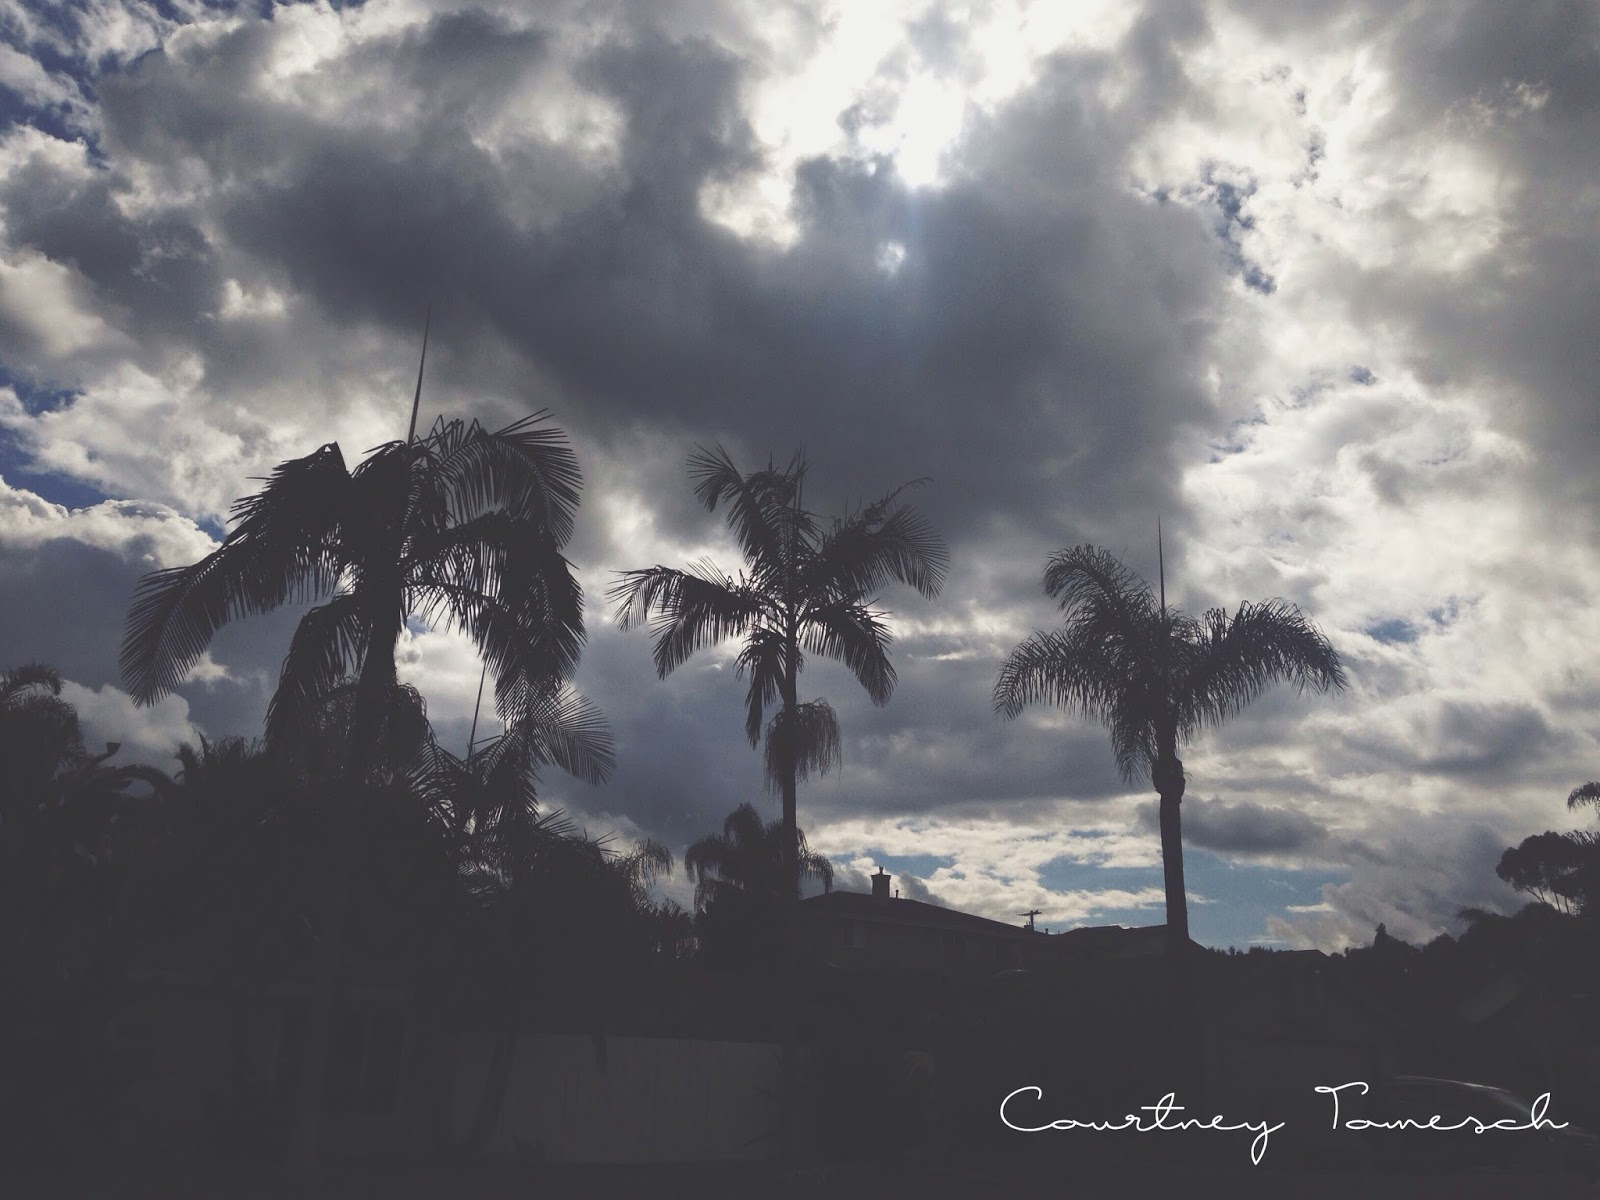 Courtney Tomesch Clouds and Palm Trees